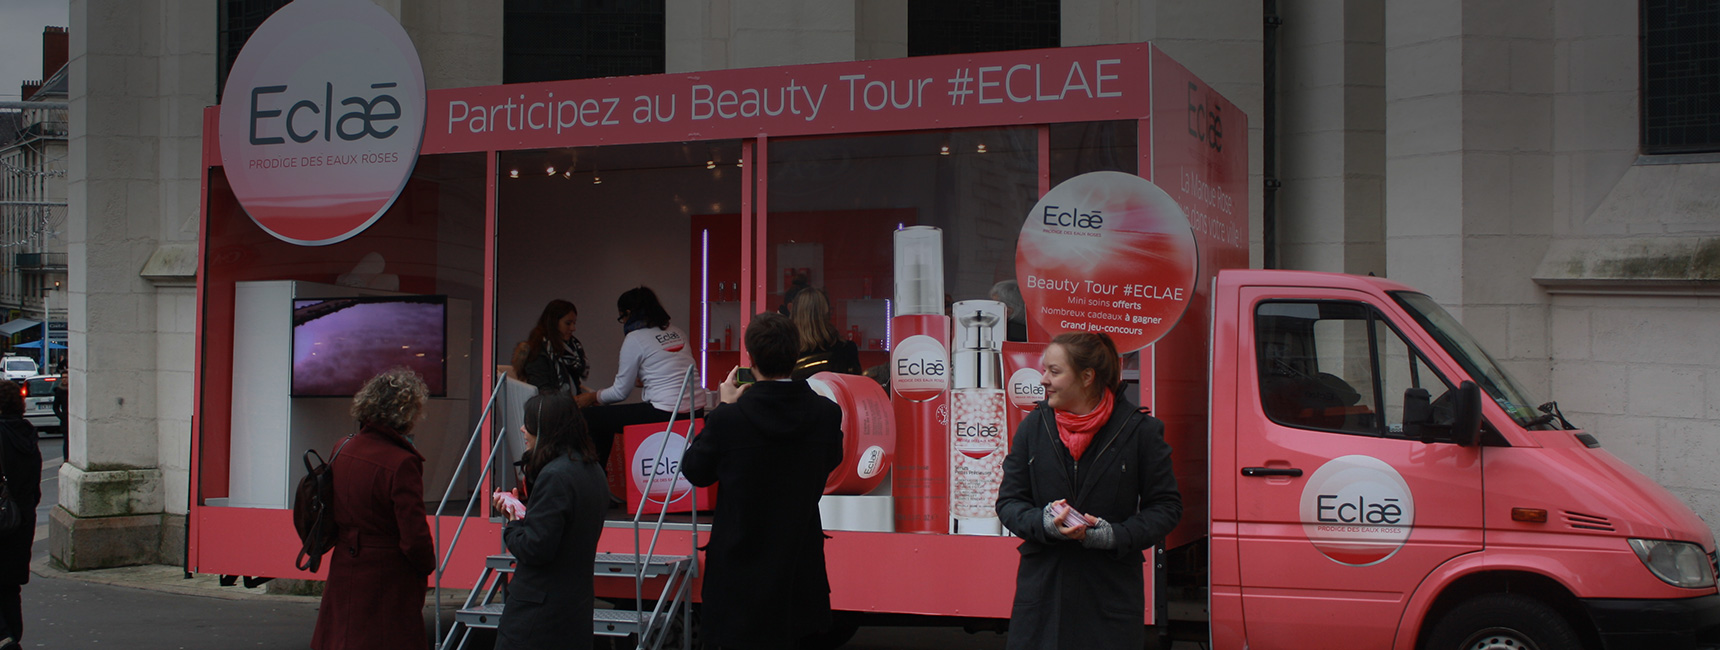 Un camion showroom pour la promotion de la marque Eclae - Keemia Shopper Marketing - Agence d'activation shopper marketing phygitale